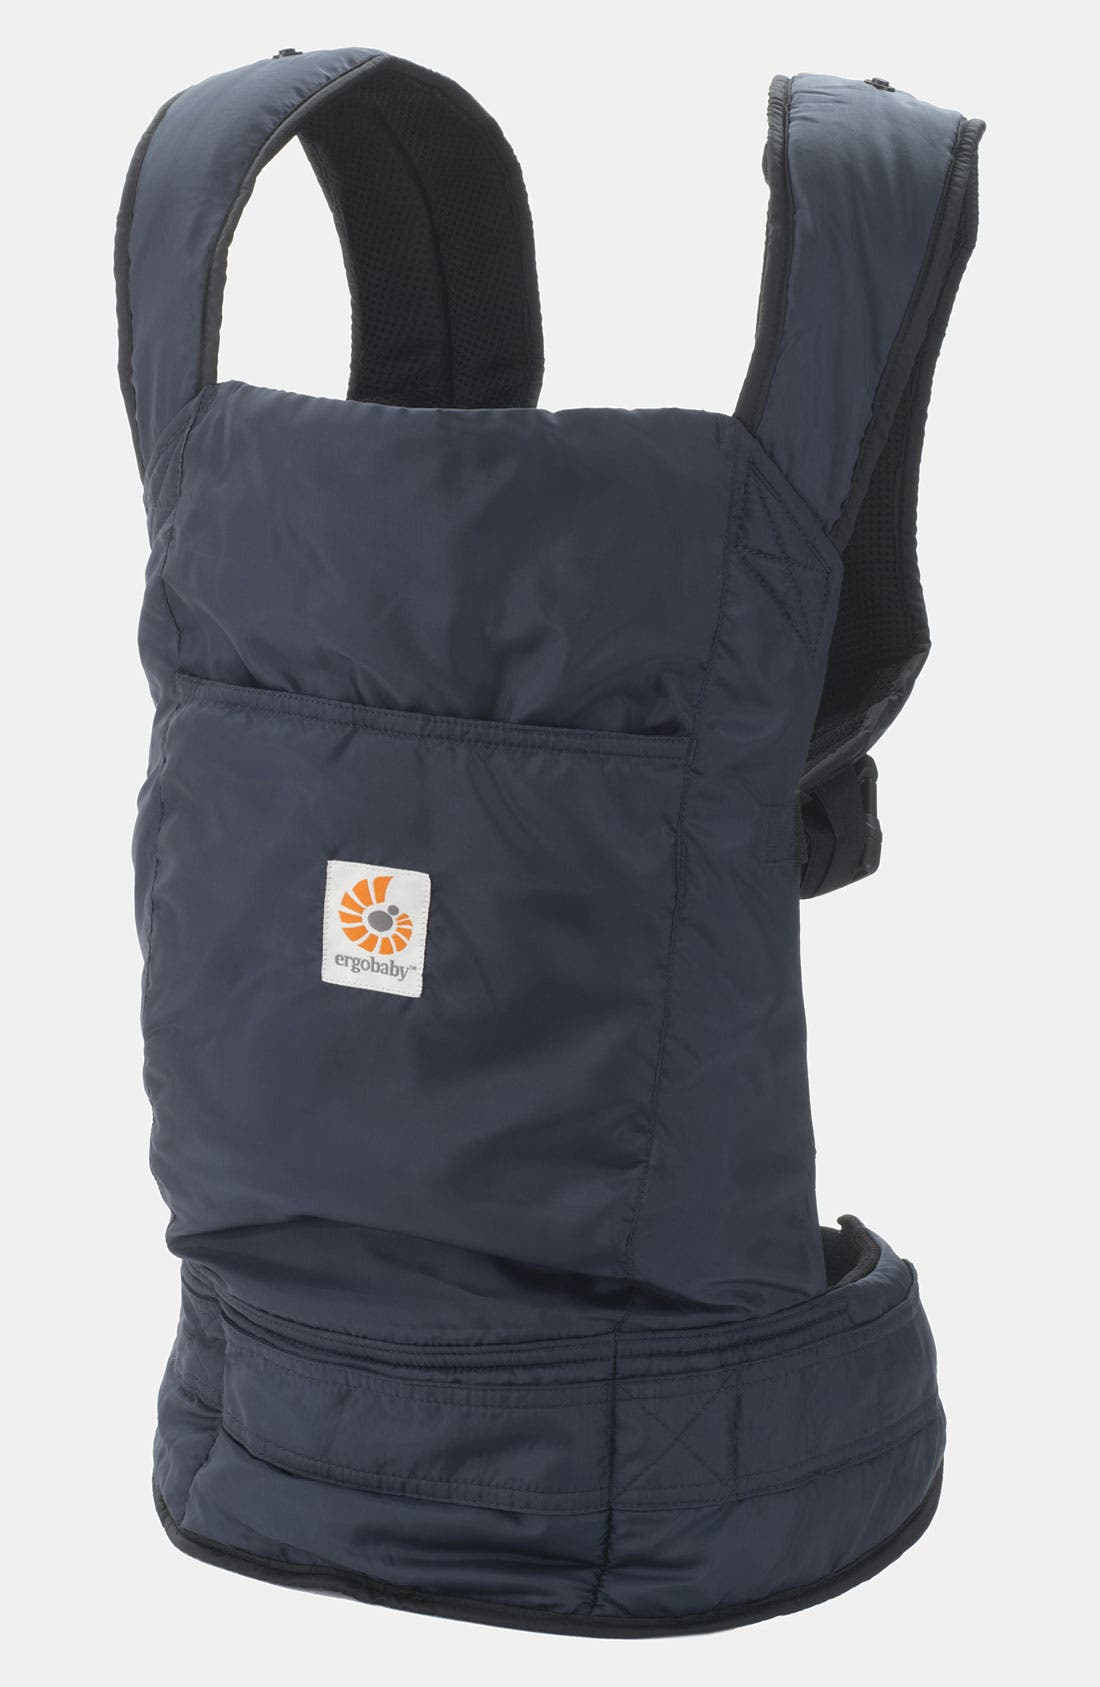 Alternate Image 1 Selected - ERGObaby 'Stowaway' Baby Carrier